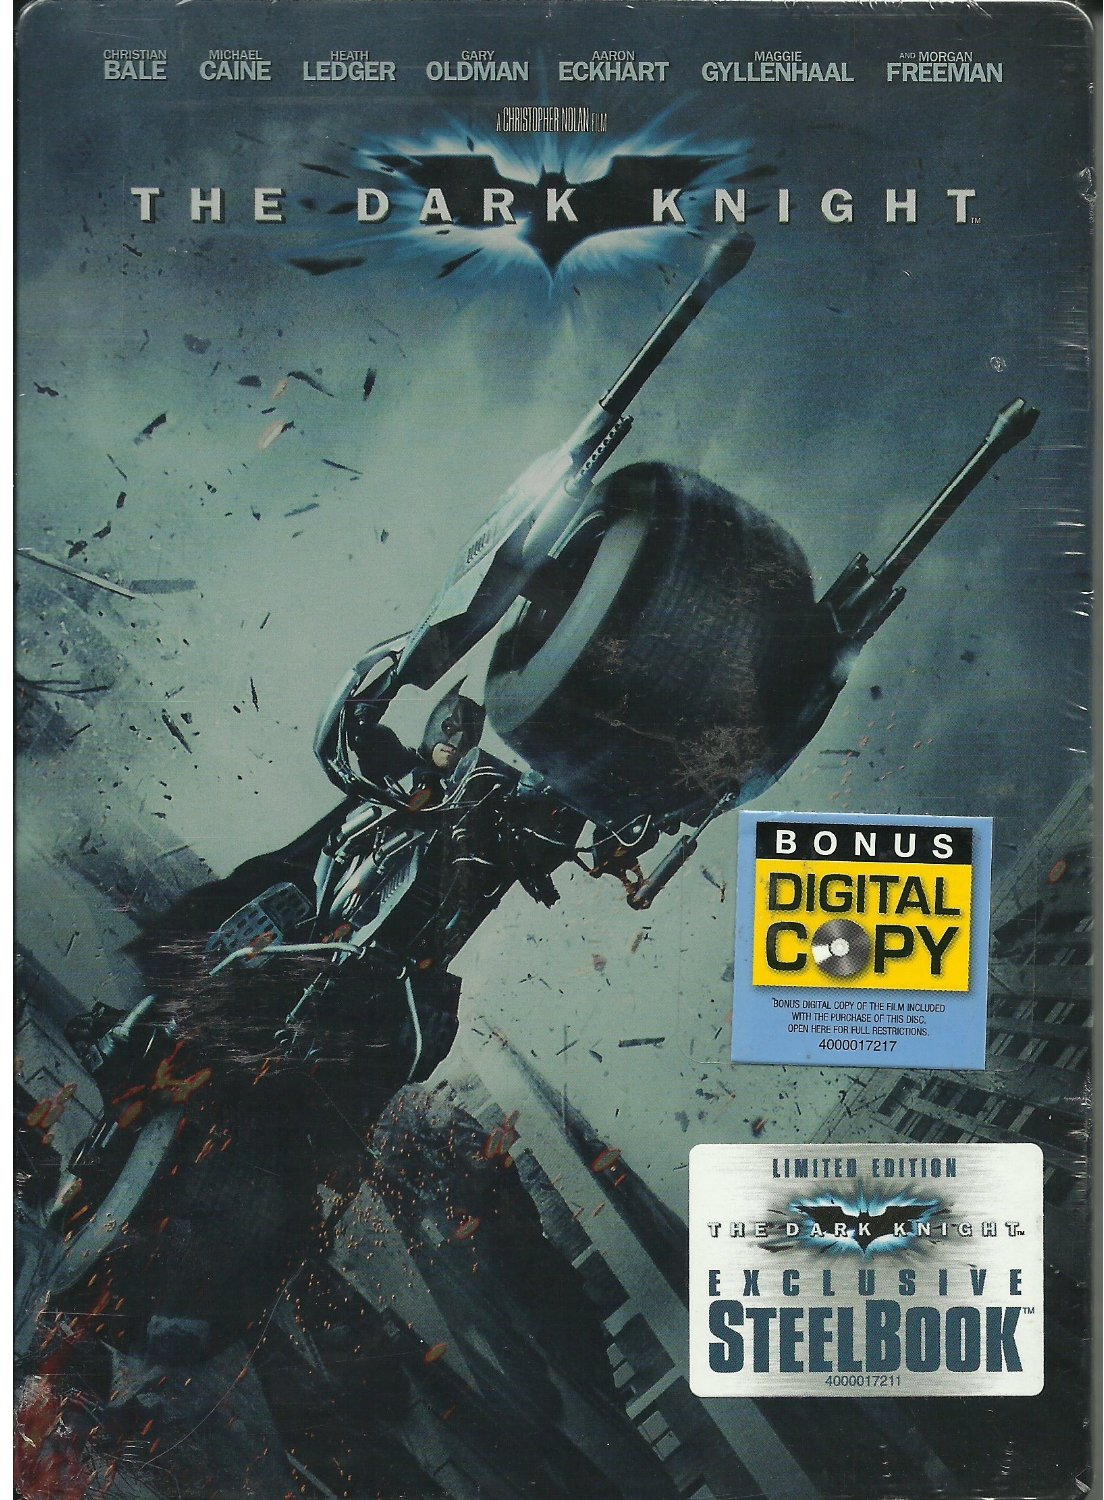 Blu-ray & DVD Exclusives: The Dark Knight: F Y E  Exclusive